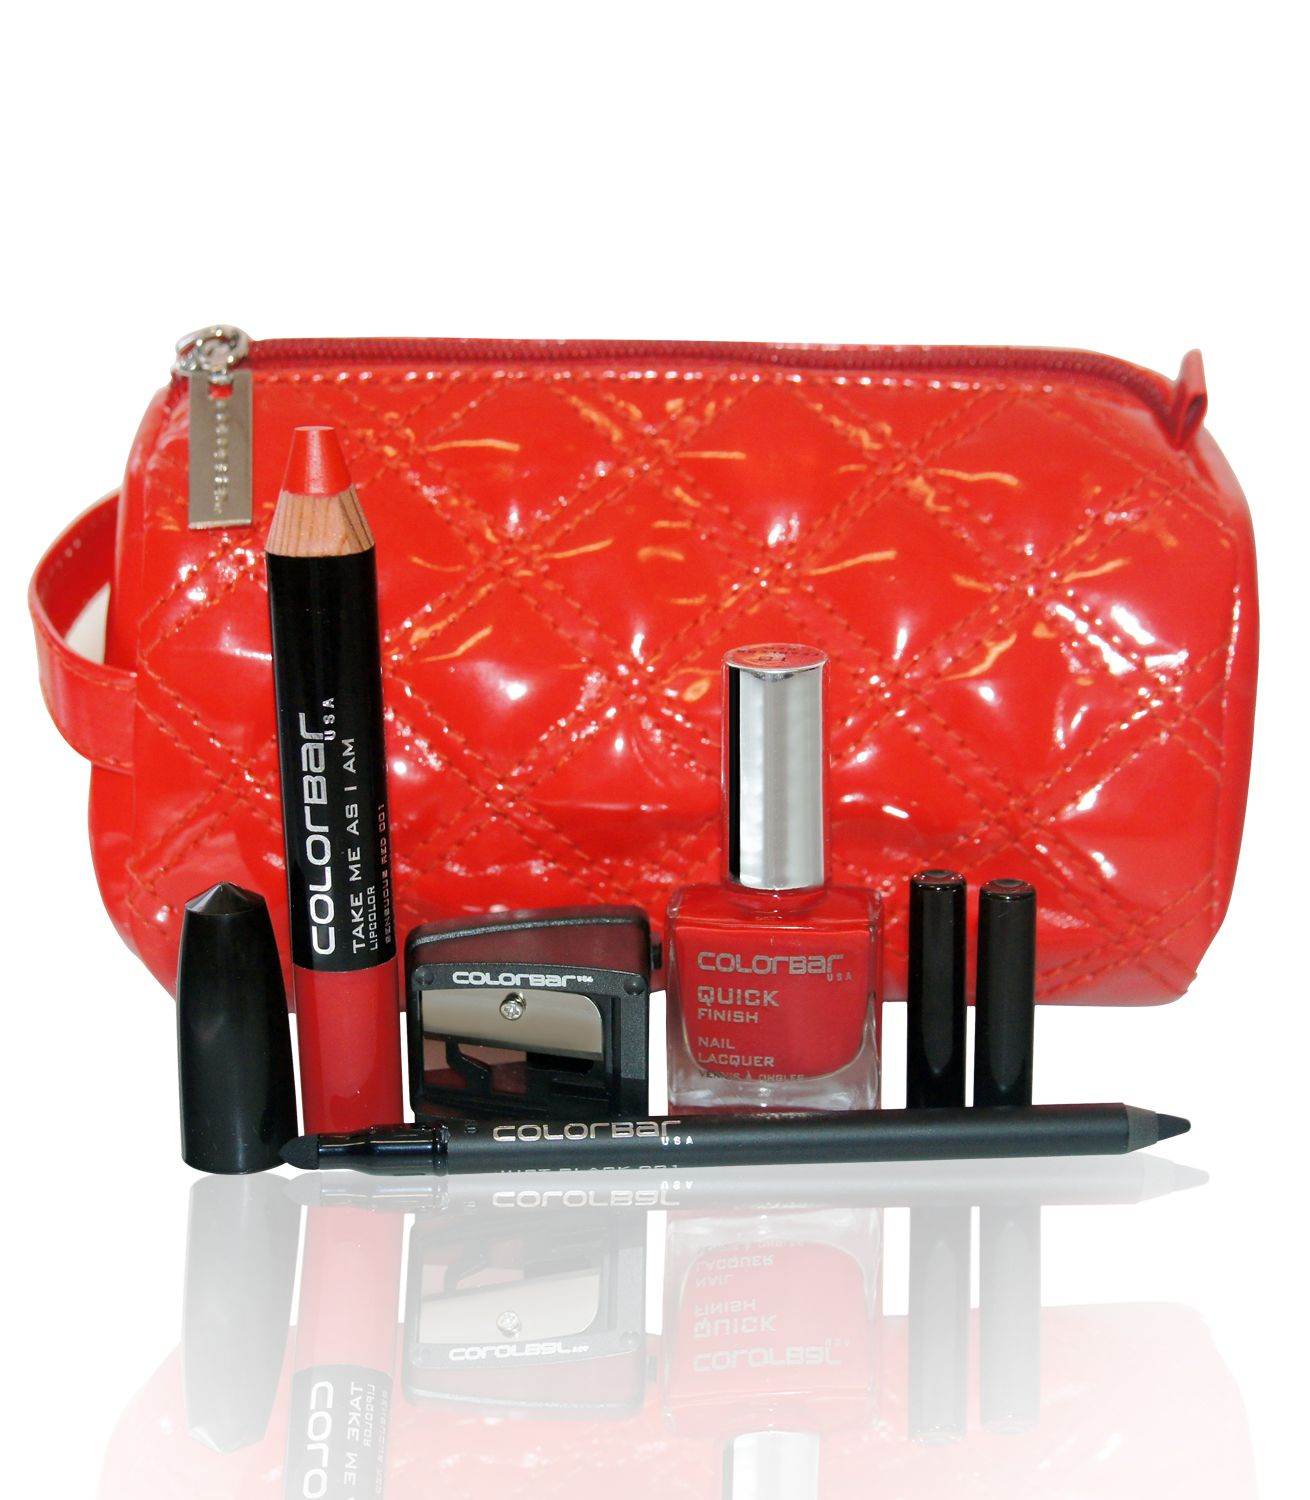 Rock Your Passion Face makeup kit, Makeup kit